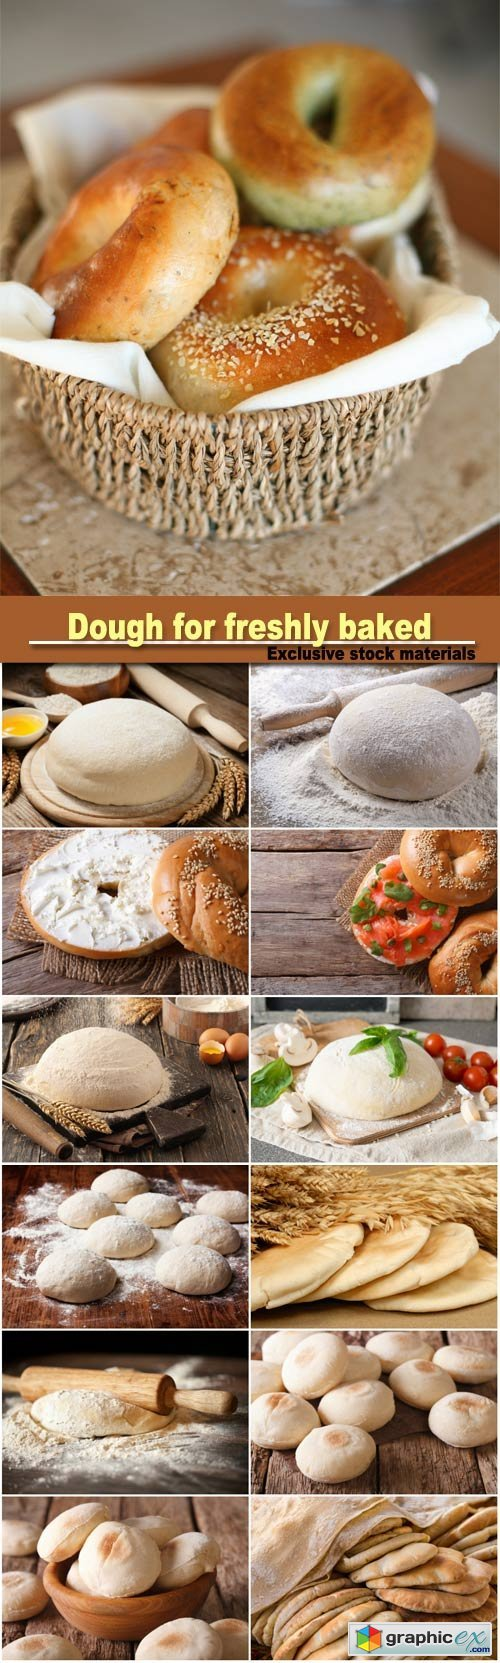 Dough for freshly baked pastries